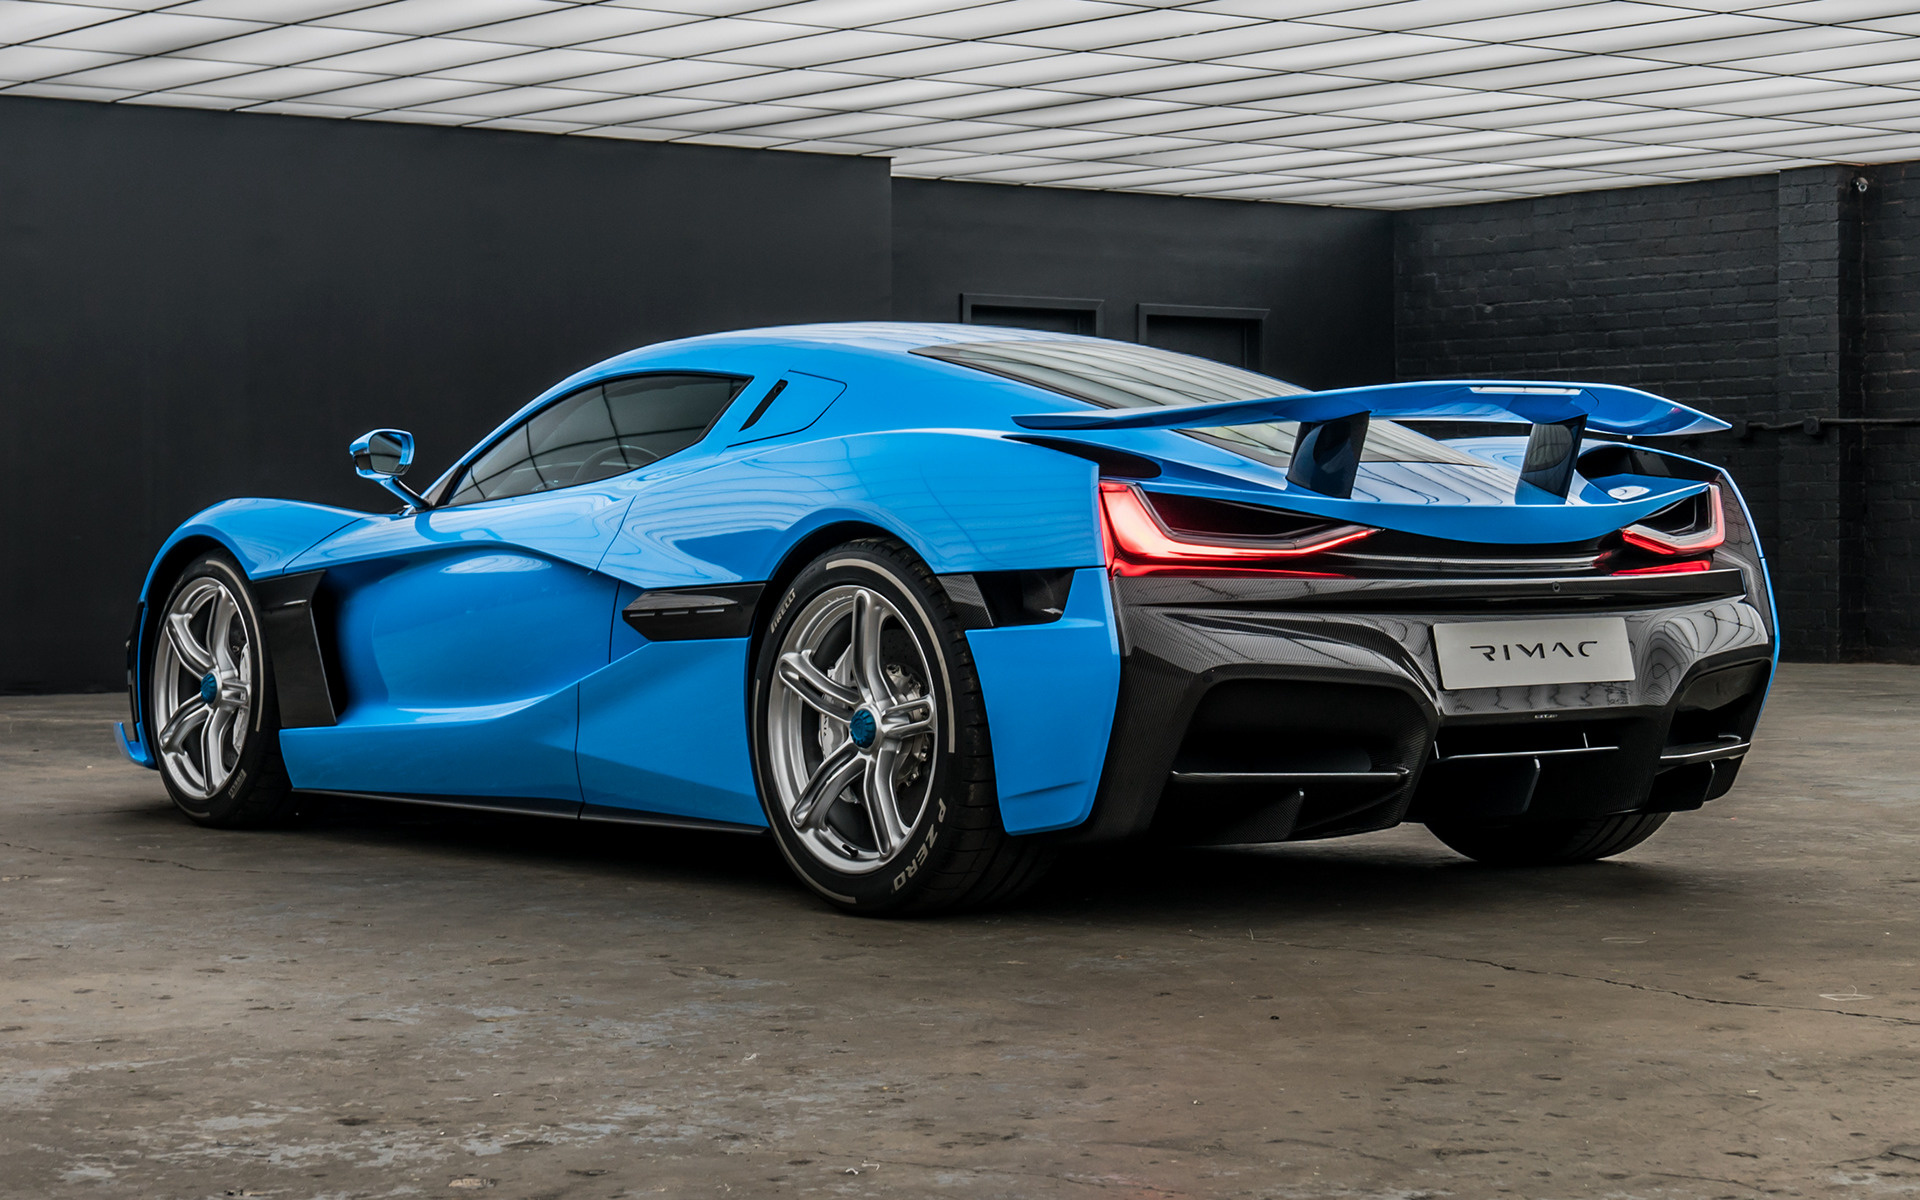 2019 Rimac C Two California Edition - Wallpapers and HD ...